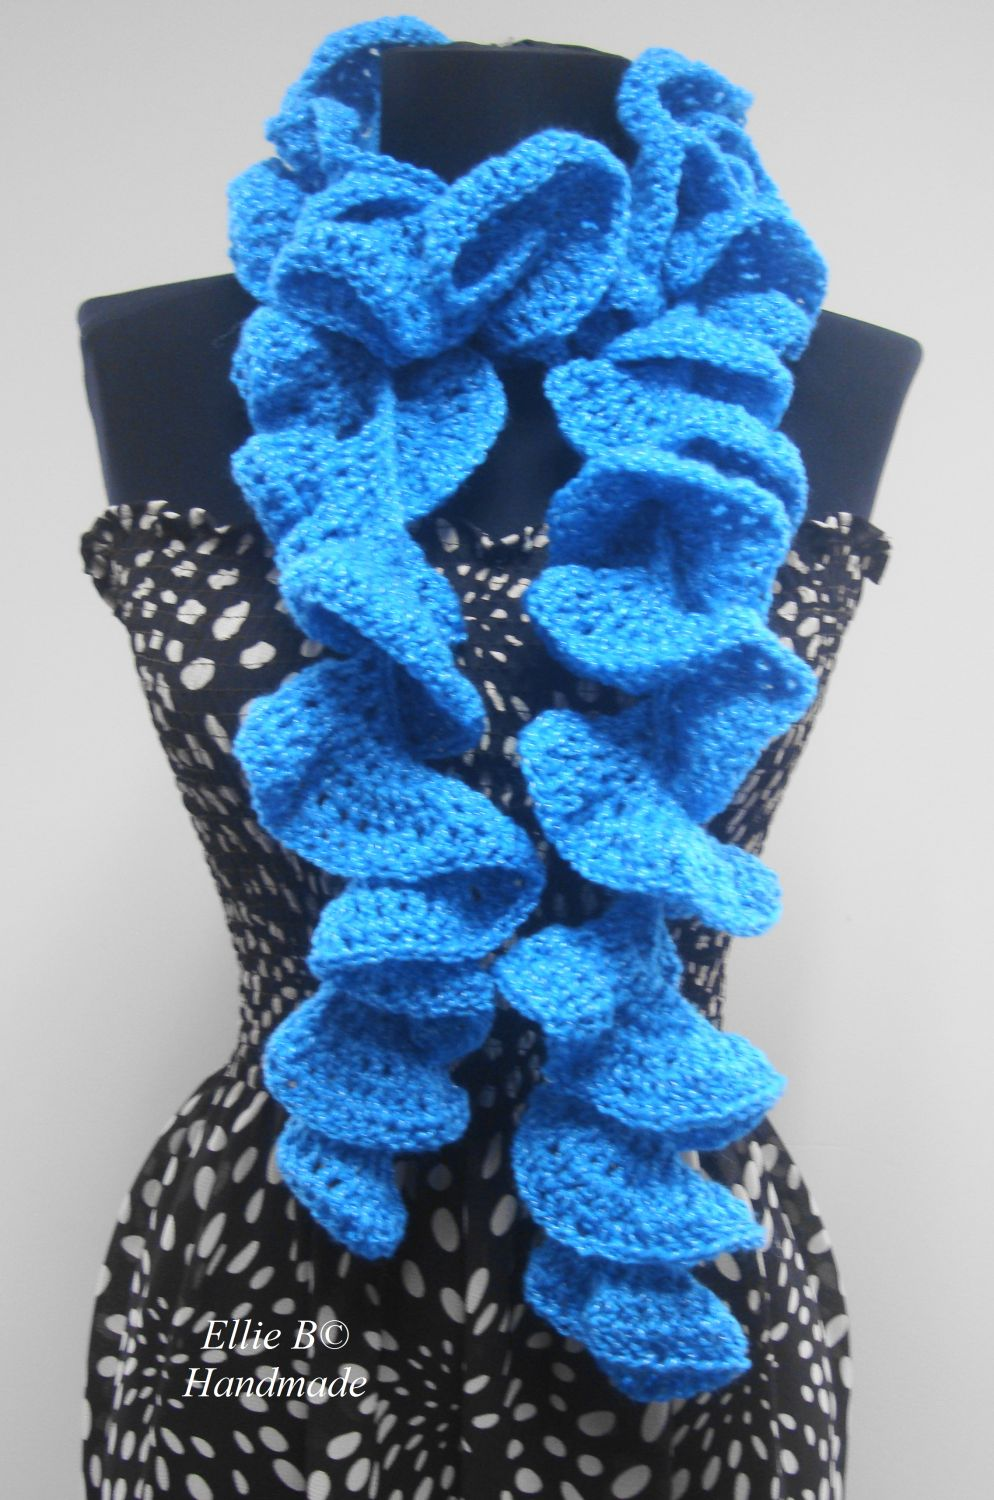 Free Crochet Pattern Spiral Scarf : SPIRAL CROCHET SCARF How To Crochet